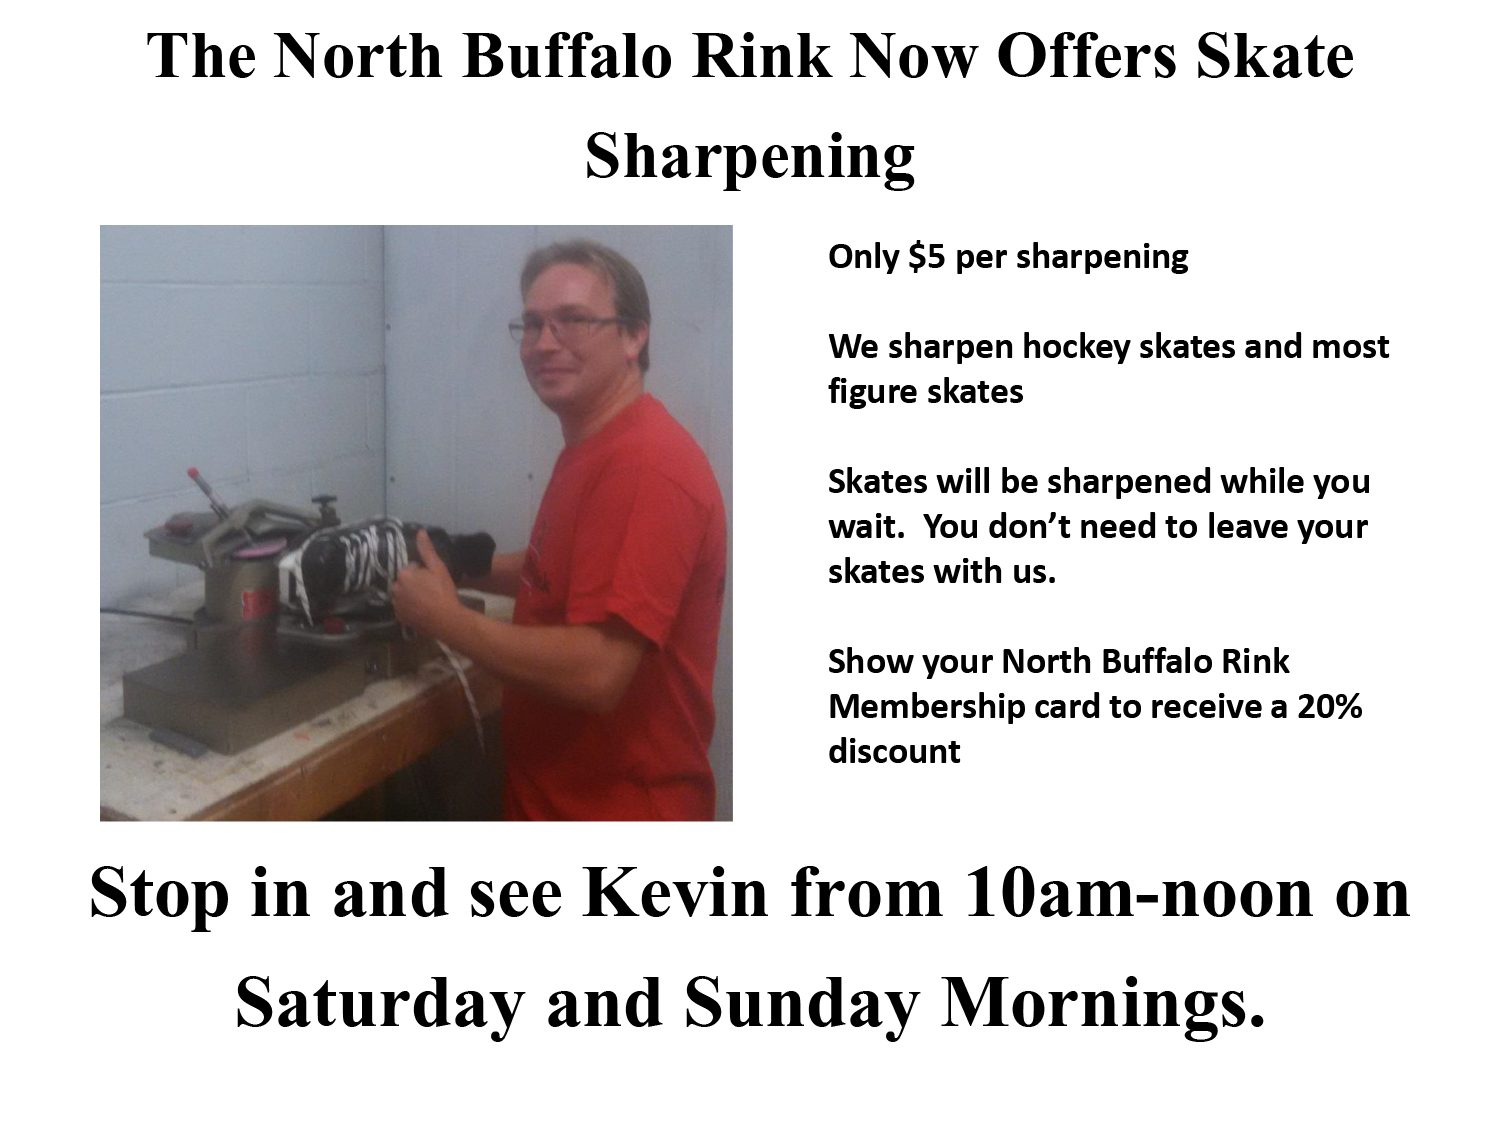 The North Buffalo Rink Now Offers Skate Sharpening  Only $5 per sharpening   We sharpen hockey skates and most figure skates.  Skates will be sharpened while you wait. You don't need to leave your skates with us.  Show your North Buffalo Rink Membership